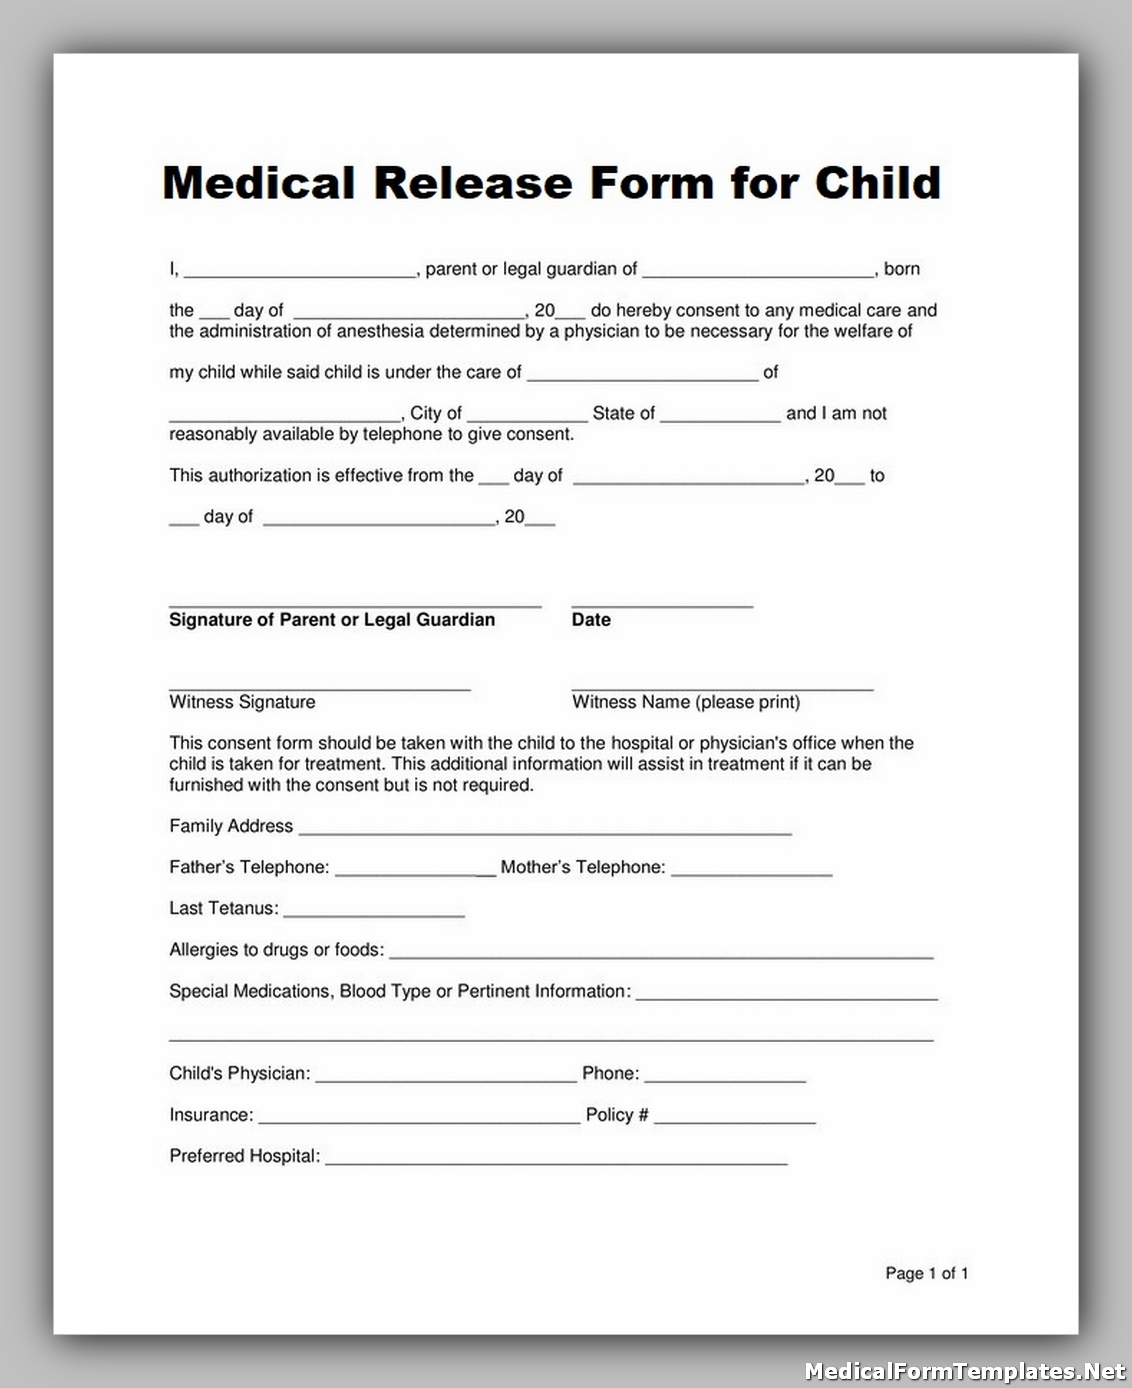 medical release form for child